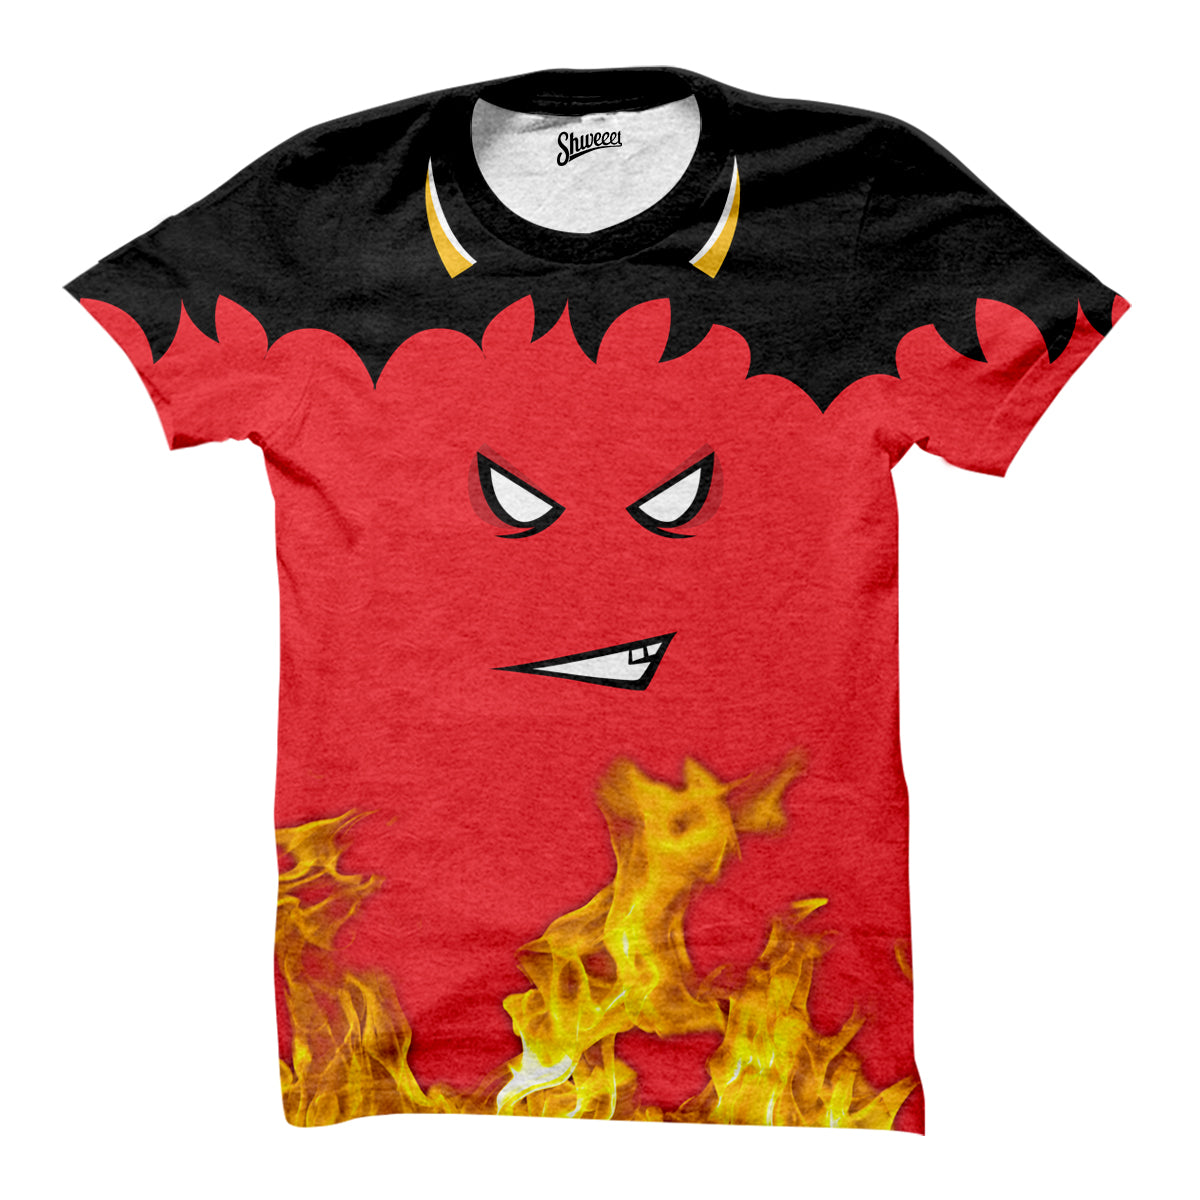 Halloween Devil T-shirt - Shweeet